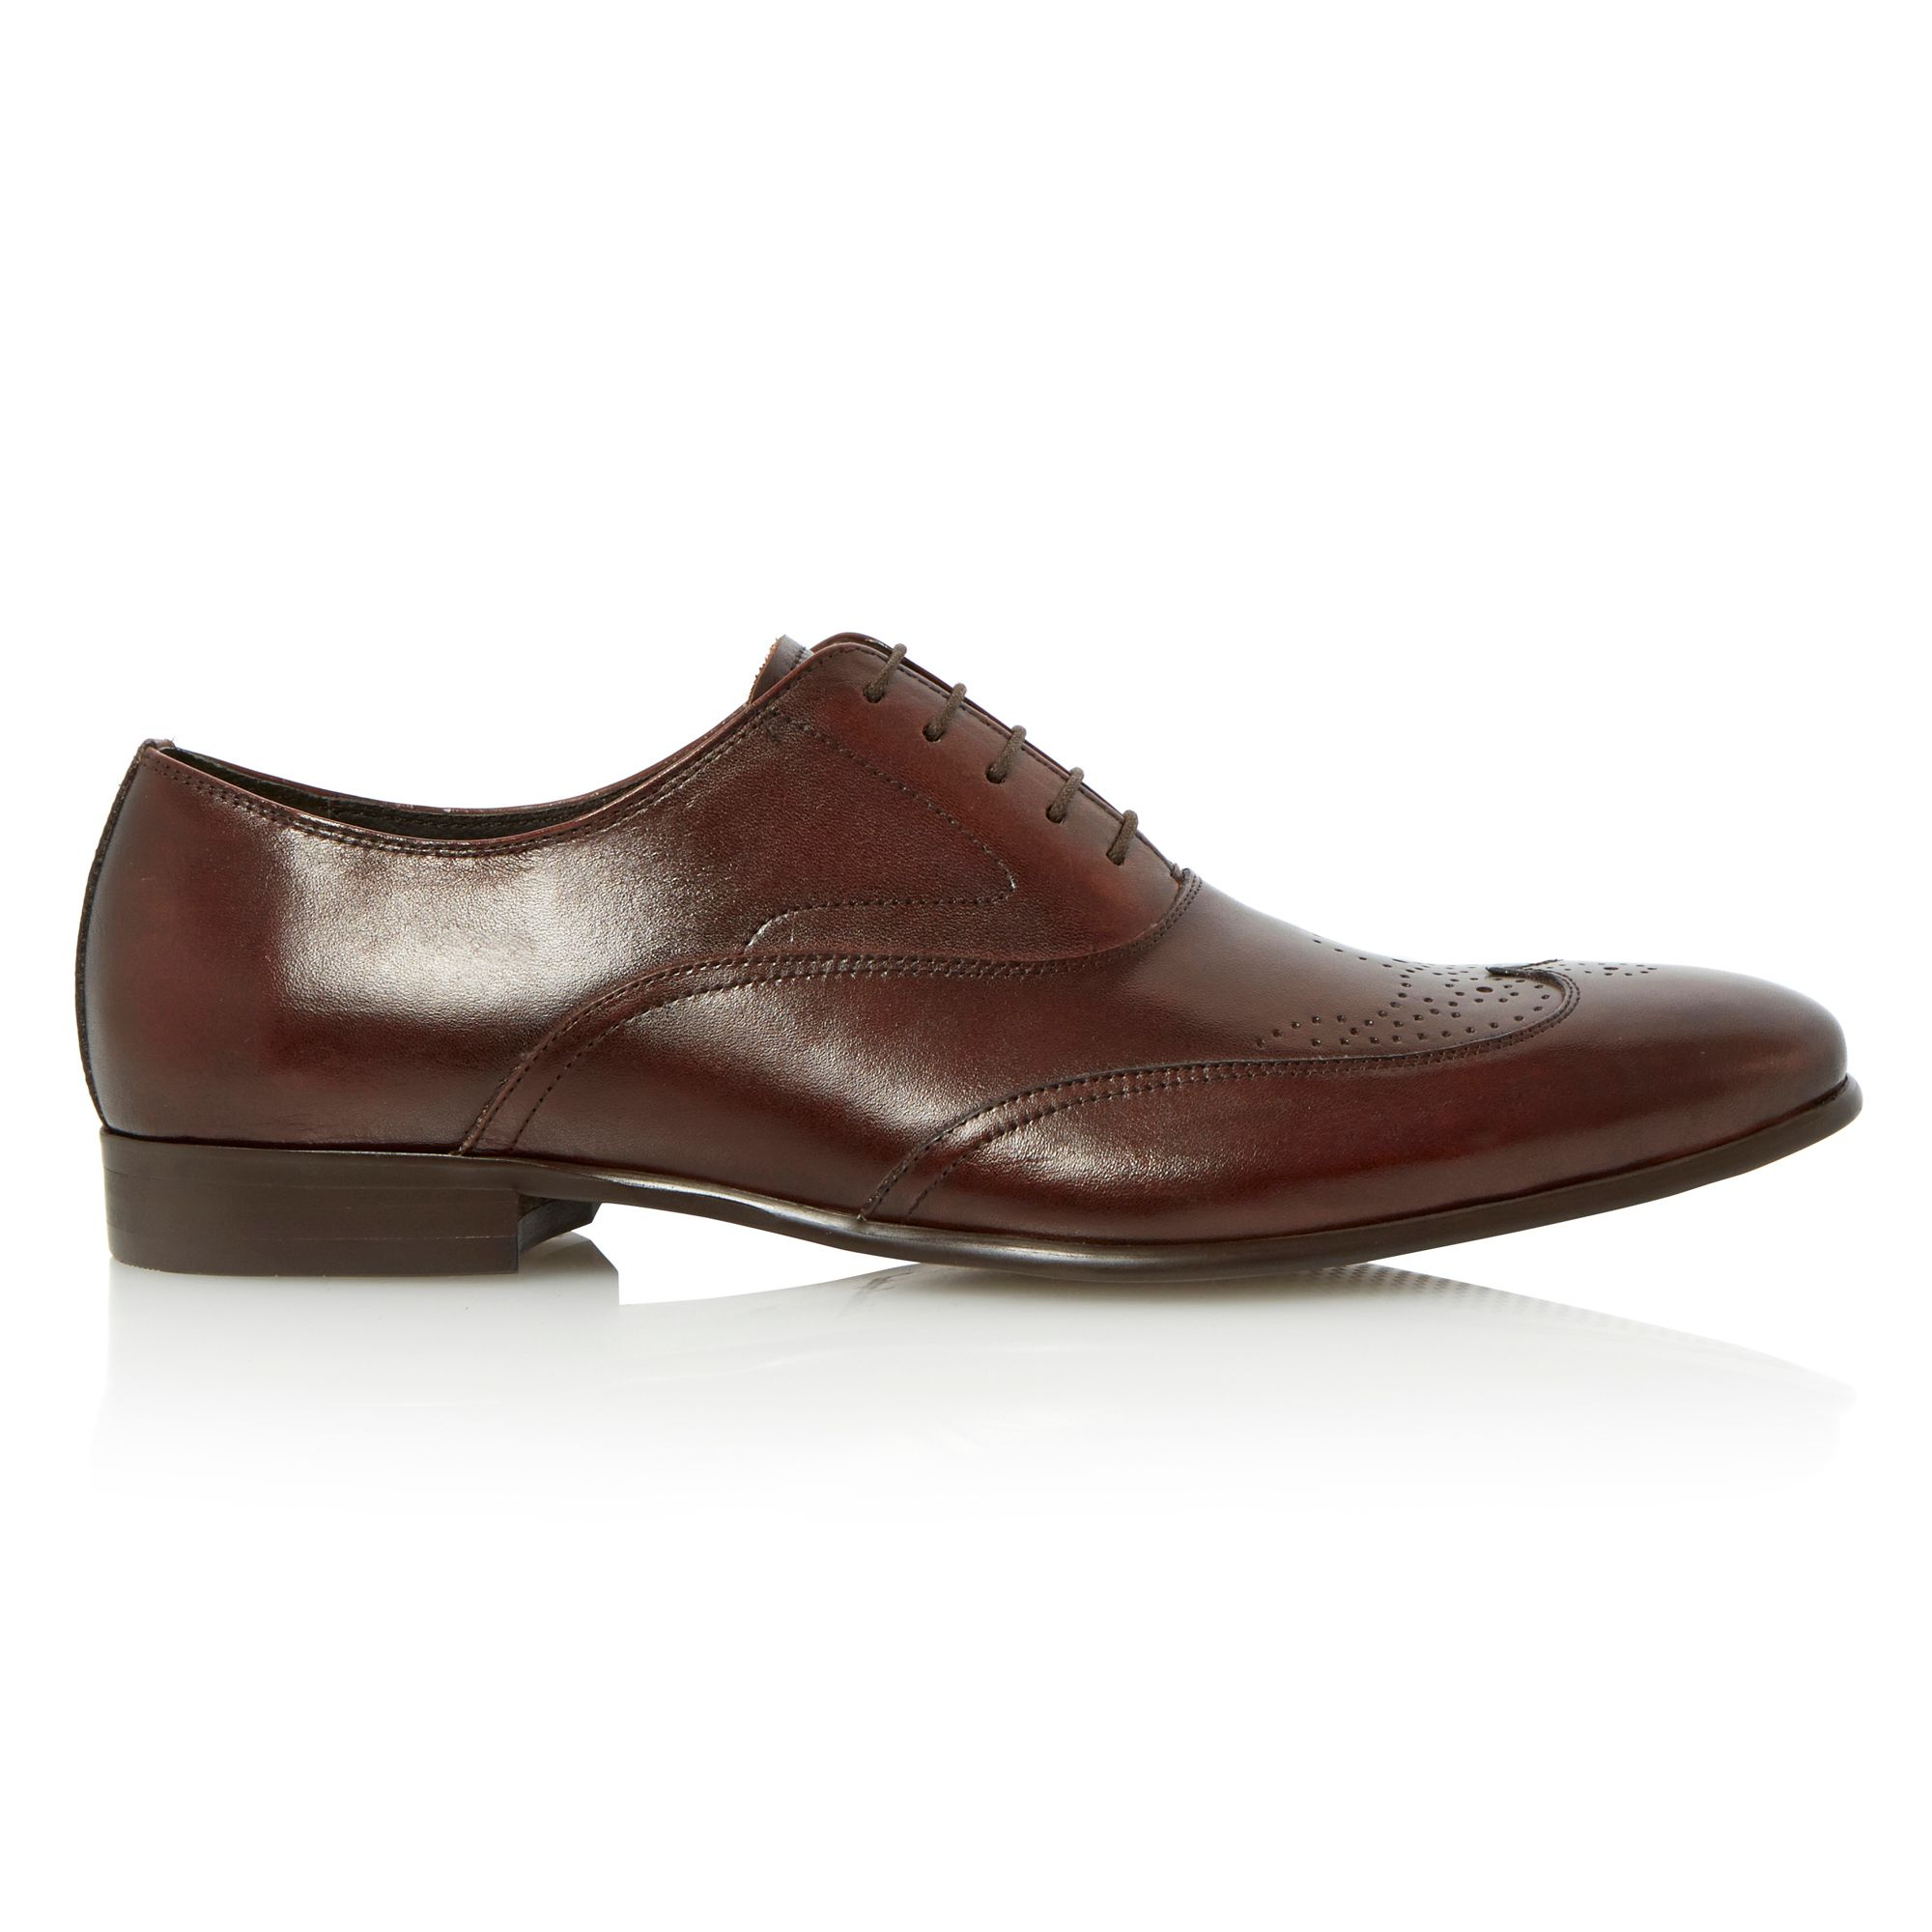 Dune Admire Lace Up Wingtip Brogue Oxford Shoes In Brown For Men | Lyst